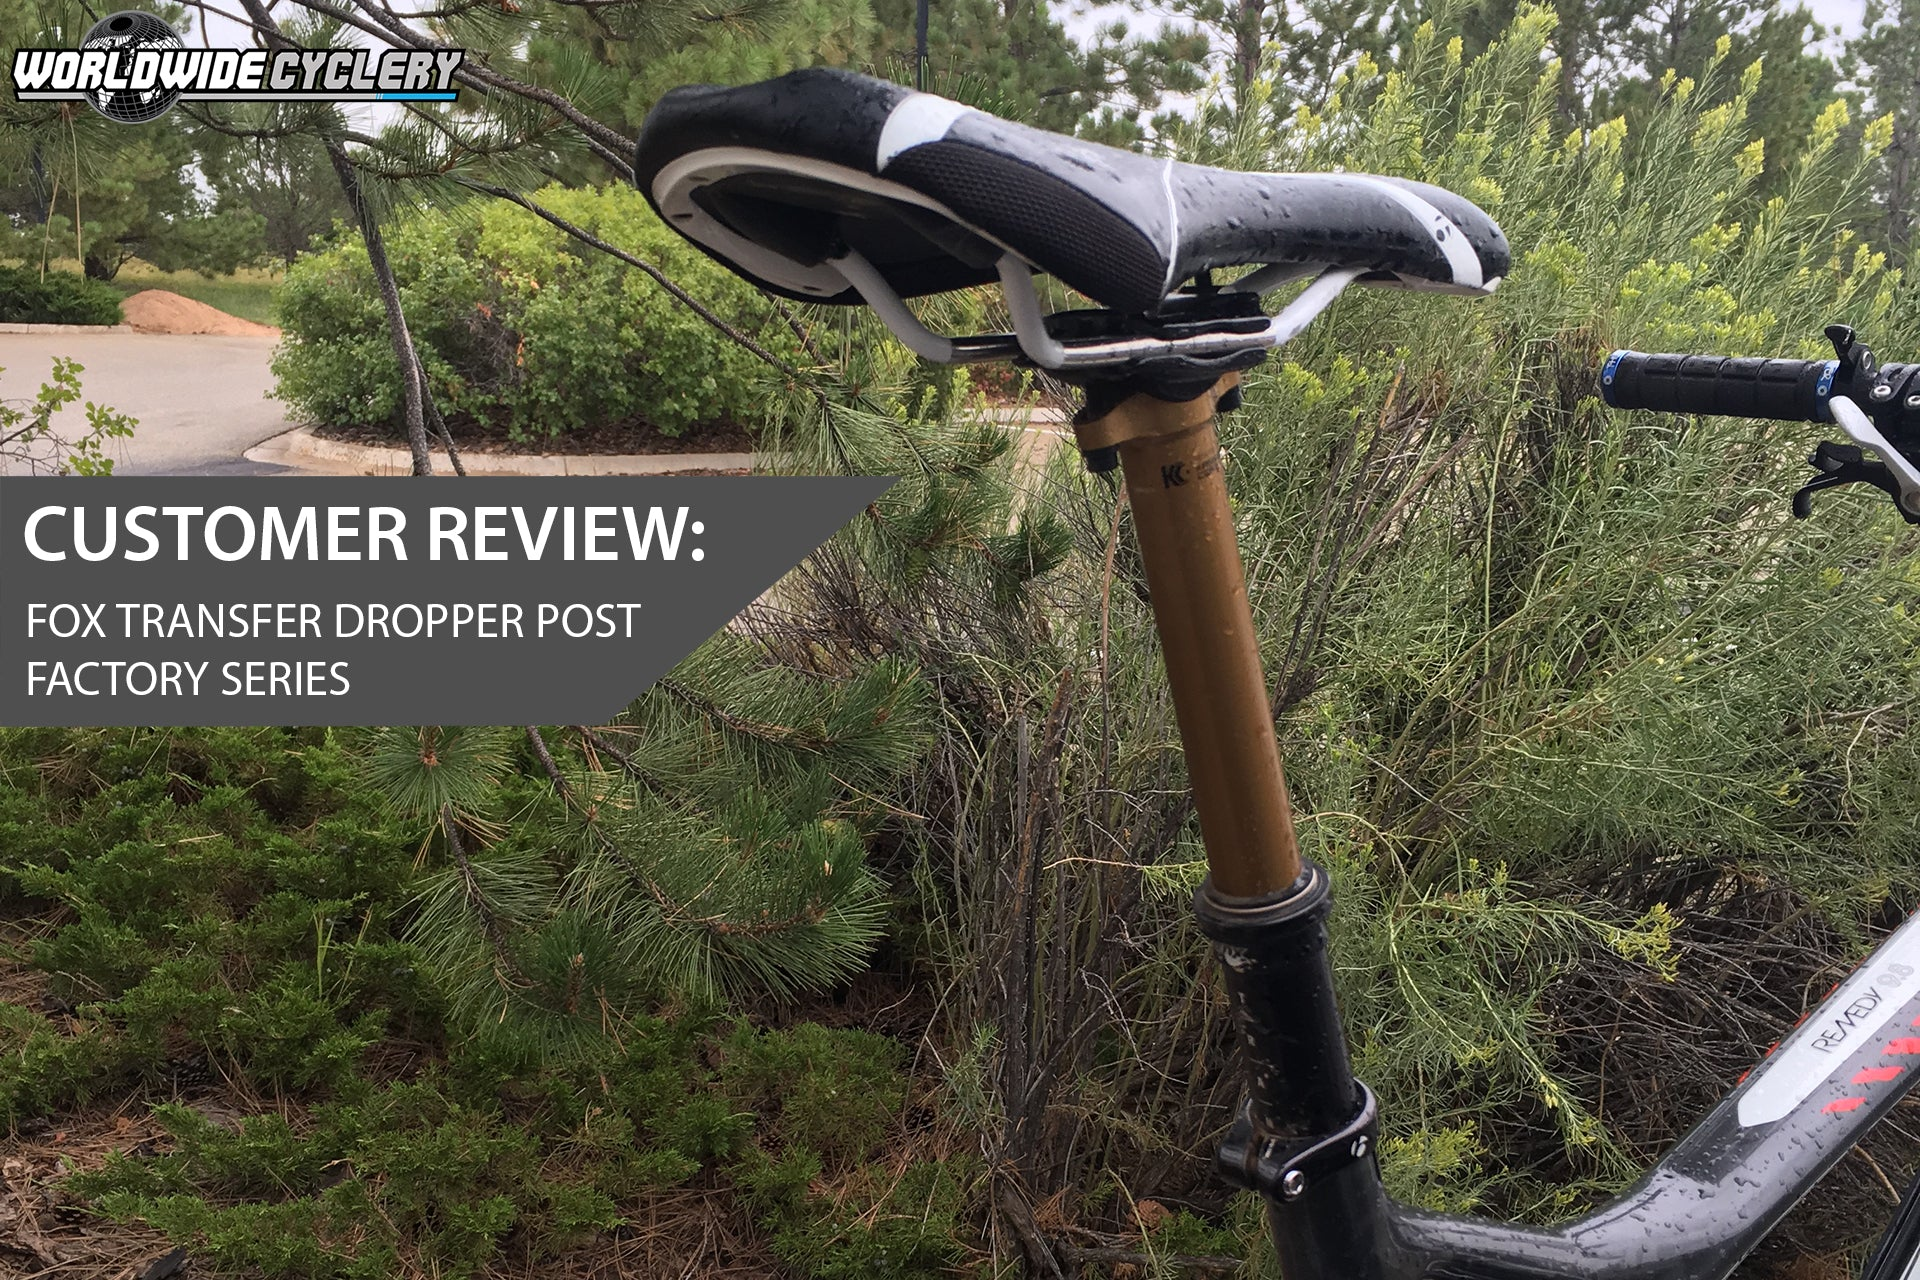 Fox Transfer Dropper Post Review